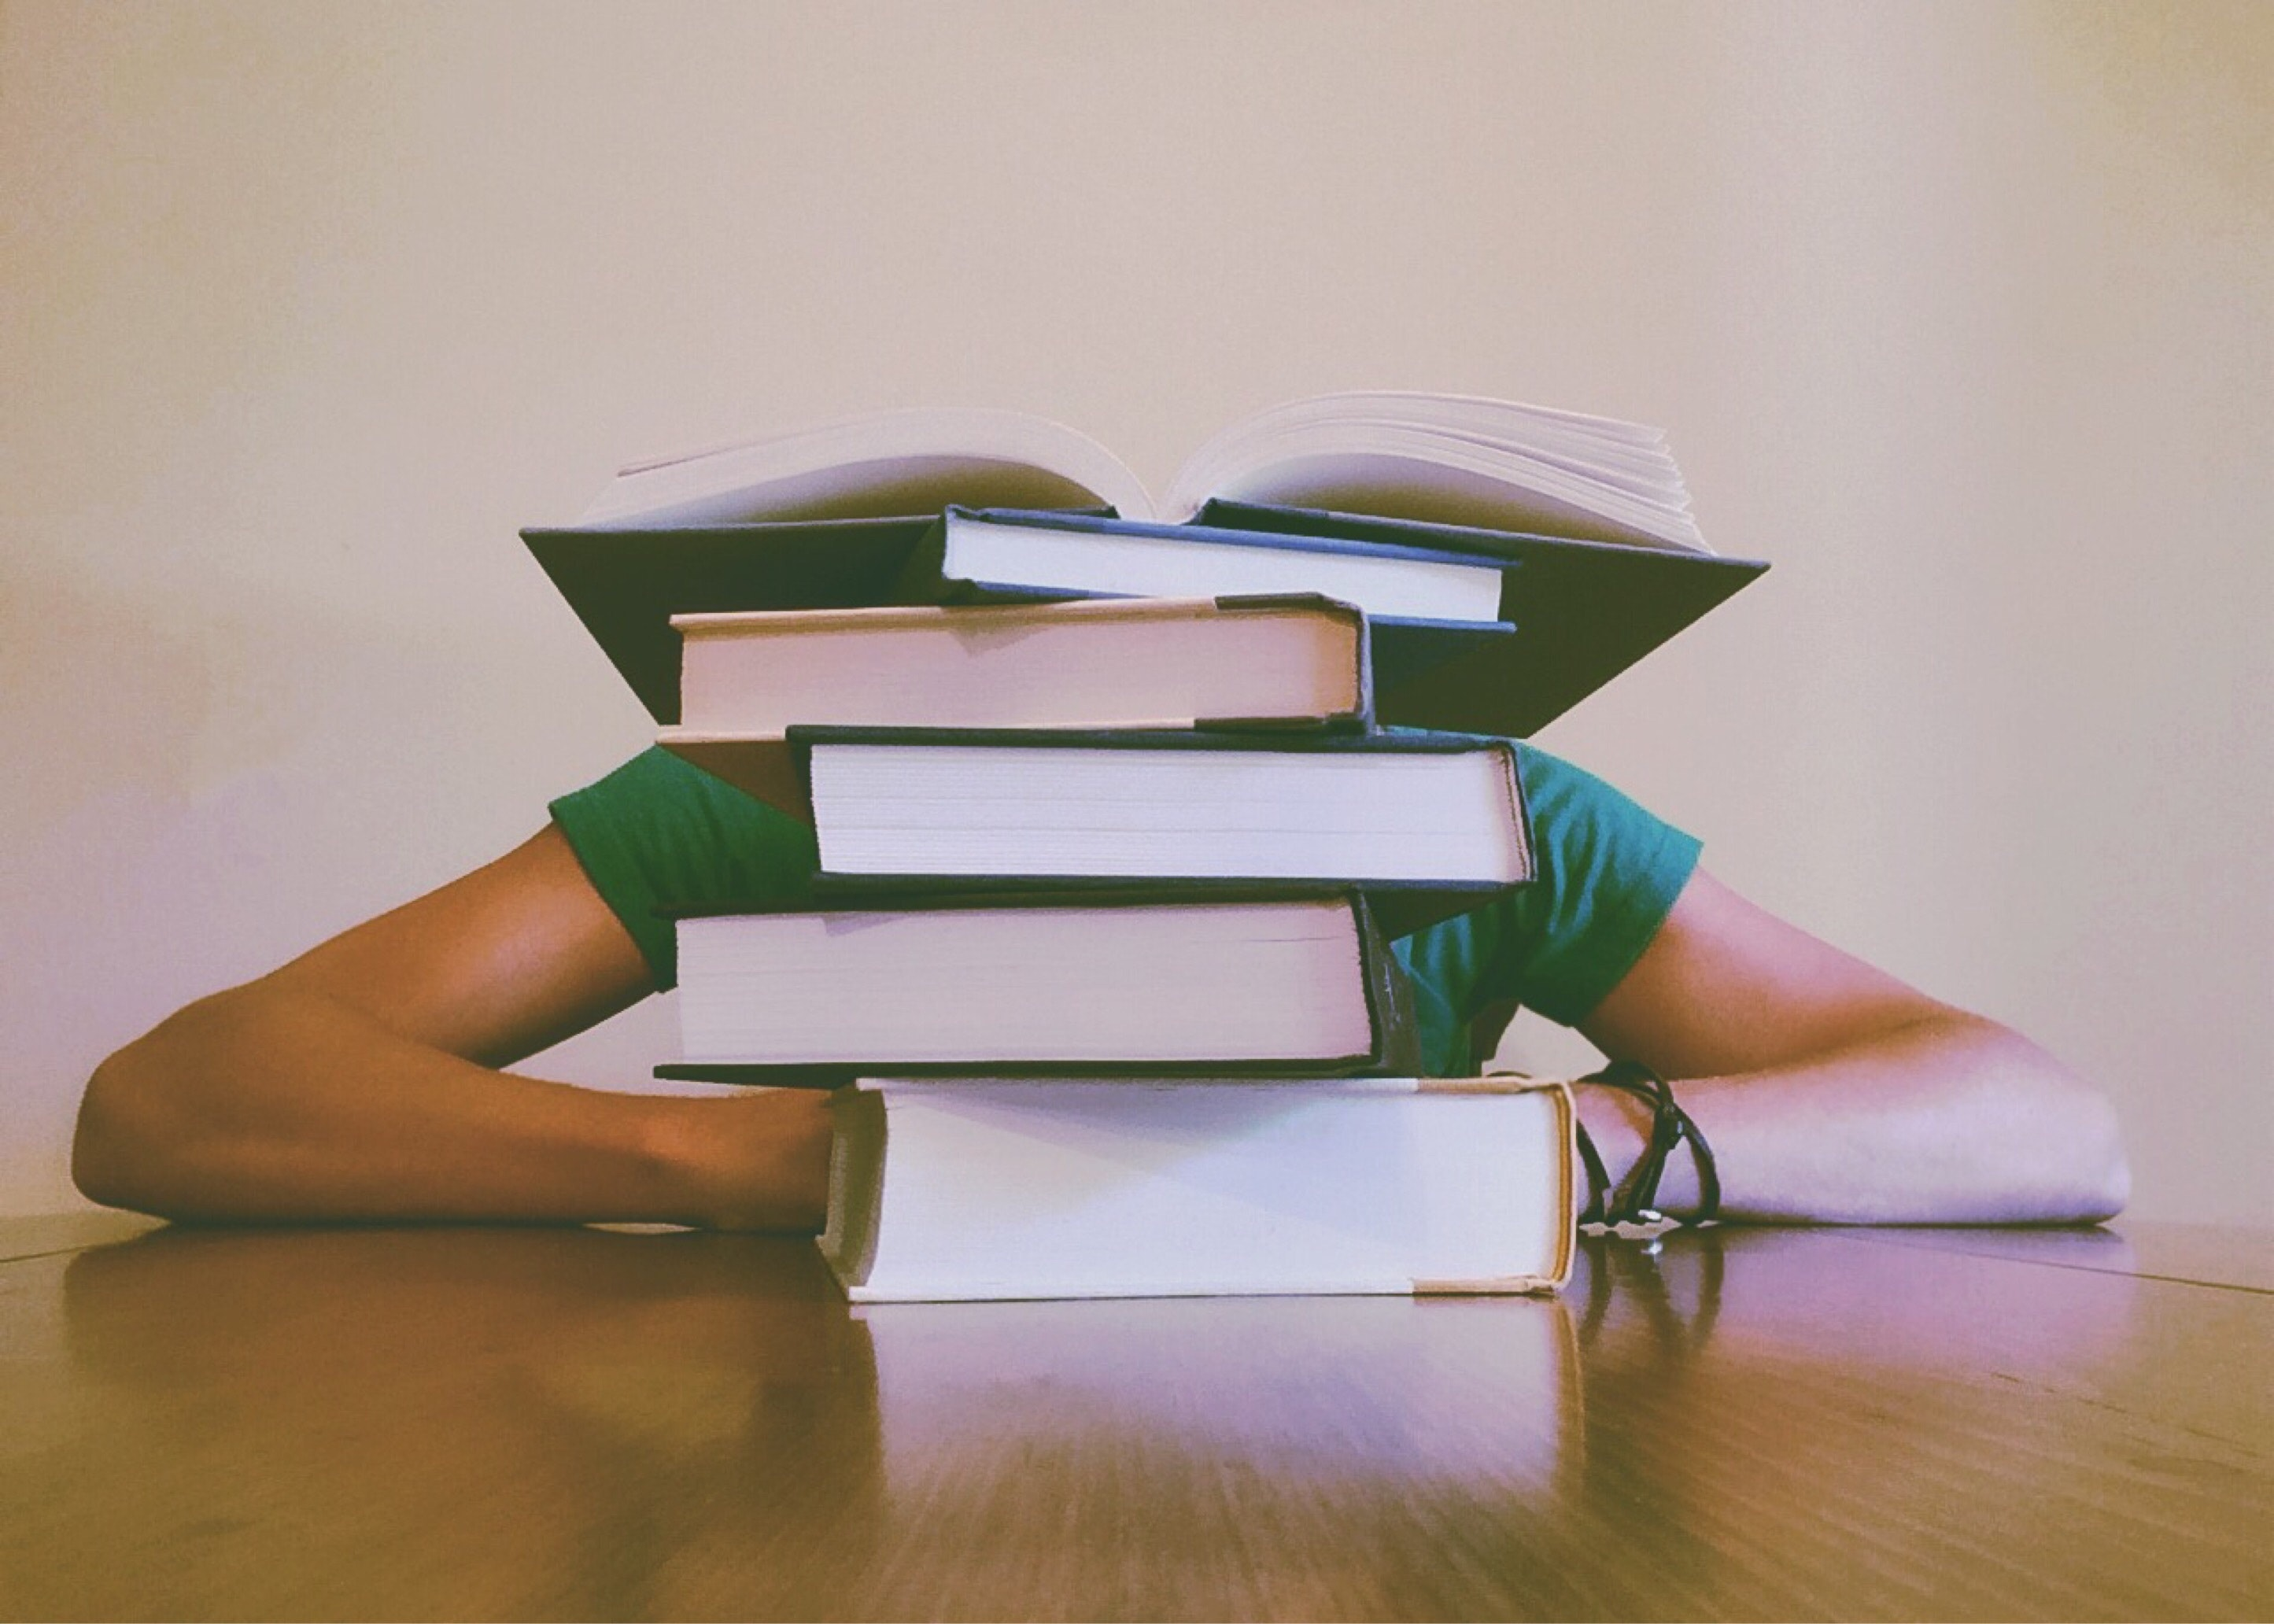 Student sitting behind stack of books